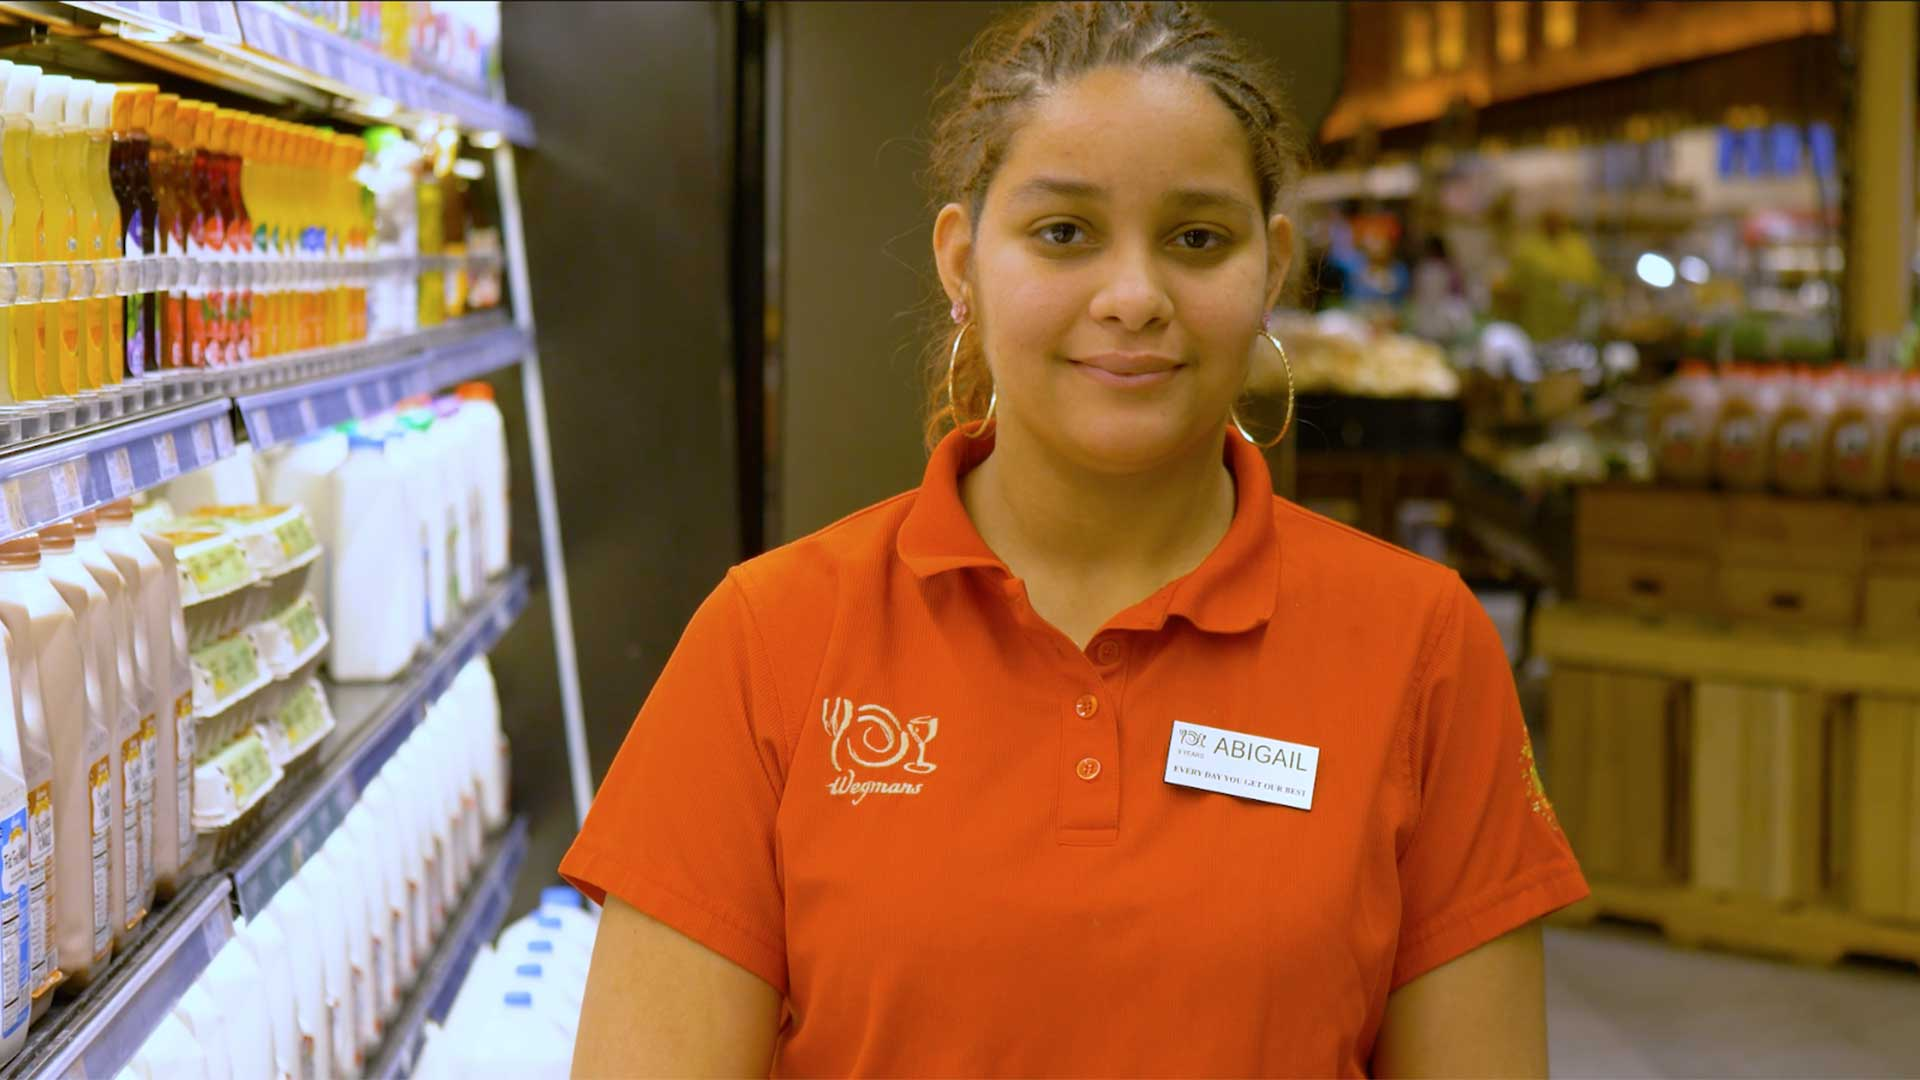 Photo of Abigail Caraballo who started working for Wegmans in 2008 at age 15.